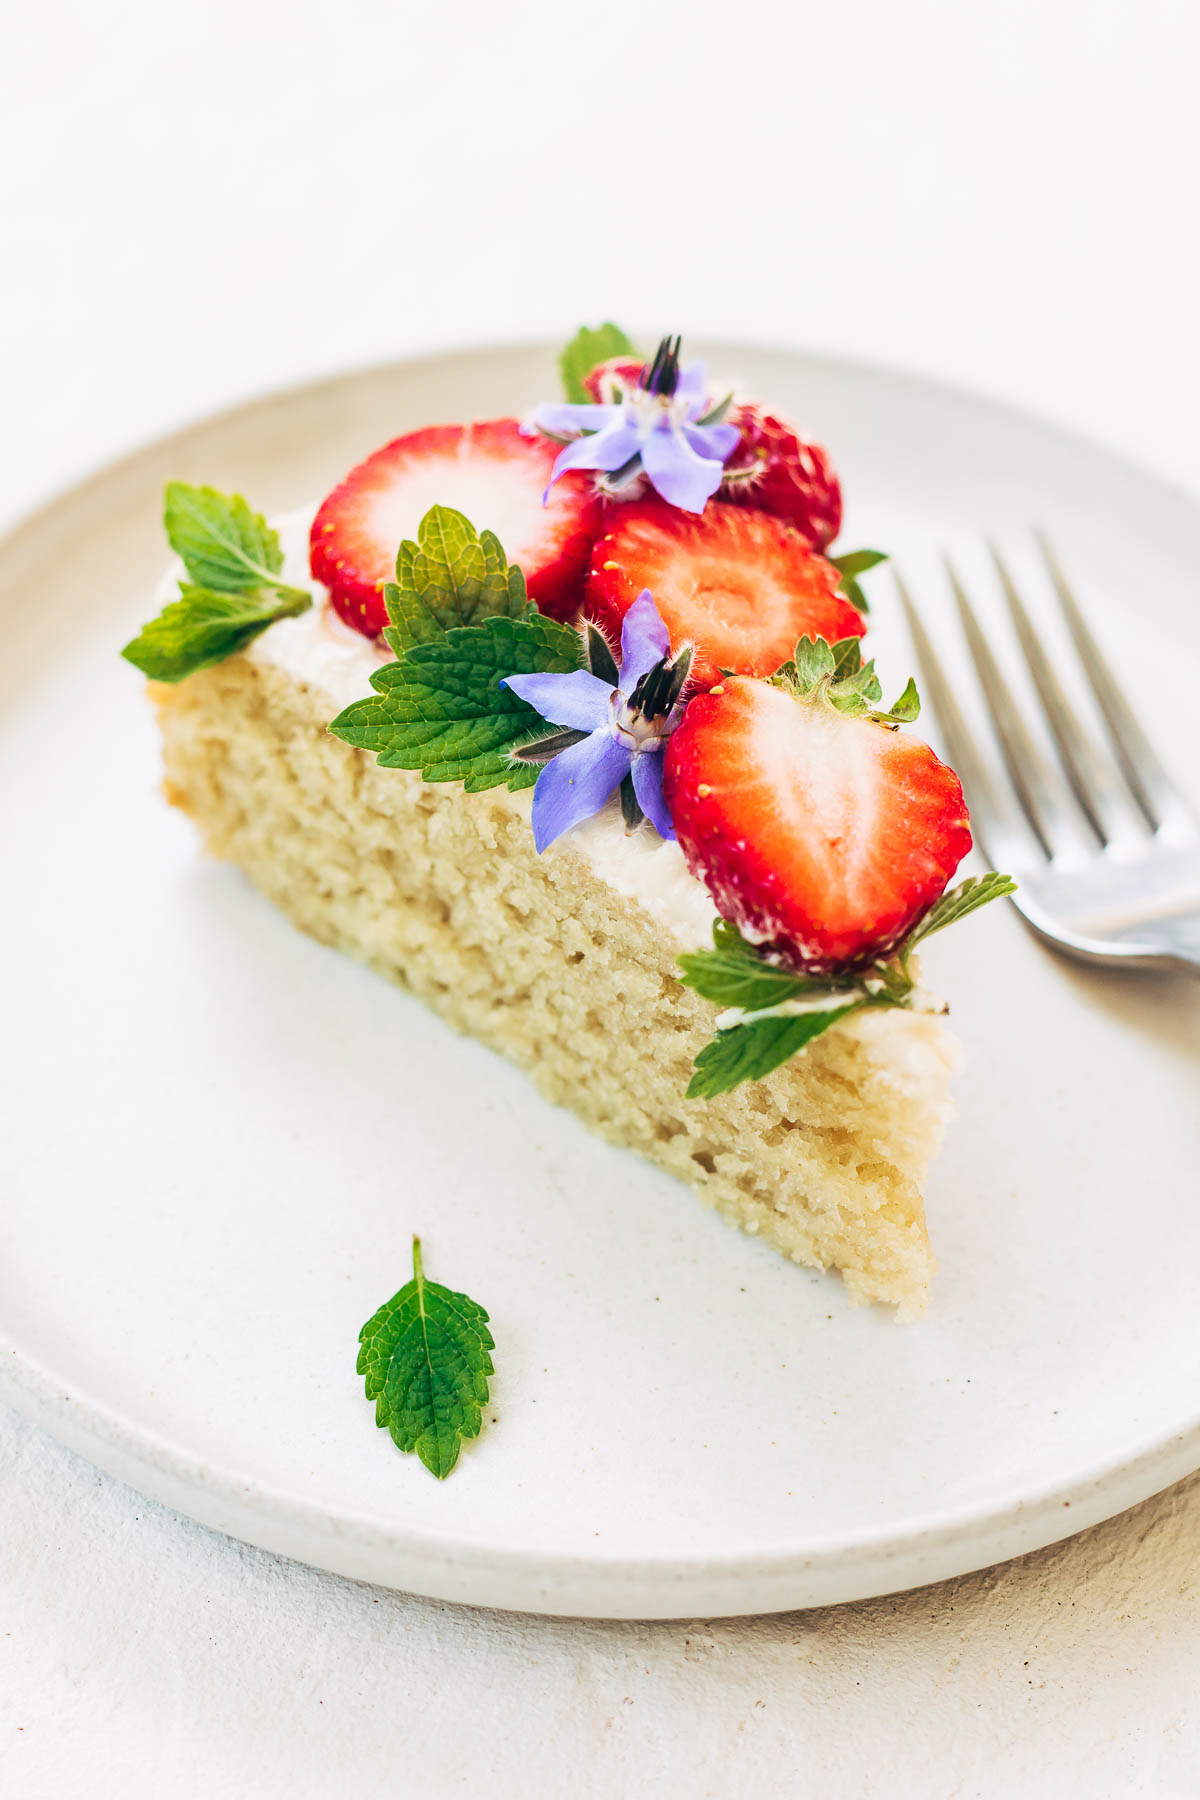 A slice of vanilla cake with white buttercream, strawberries, and edible flowers/herbs.